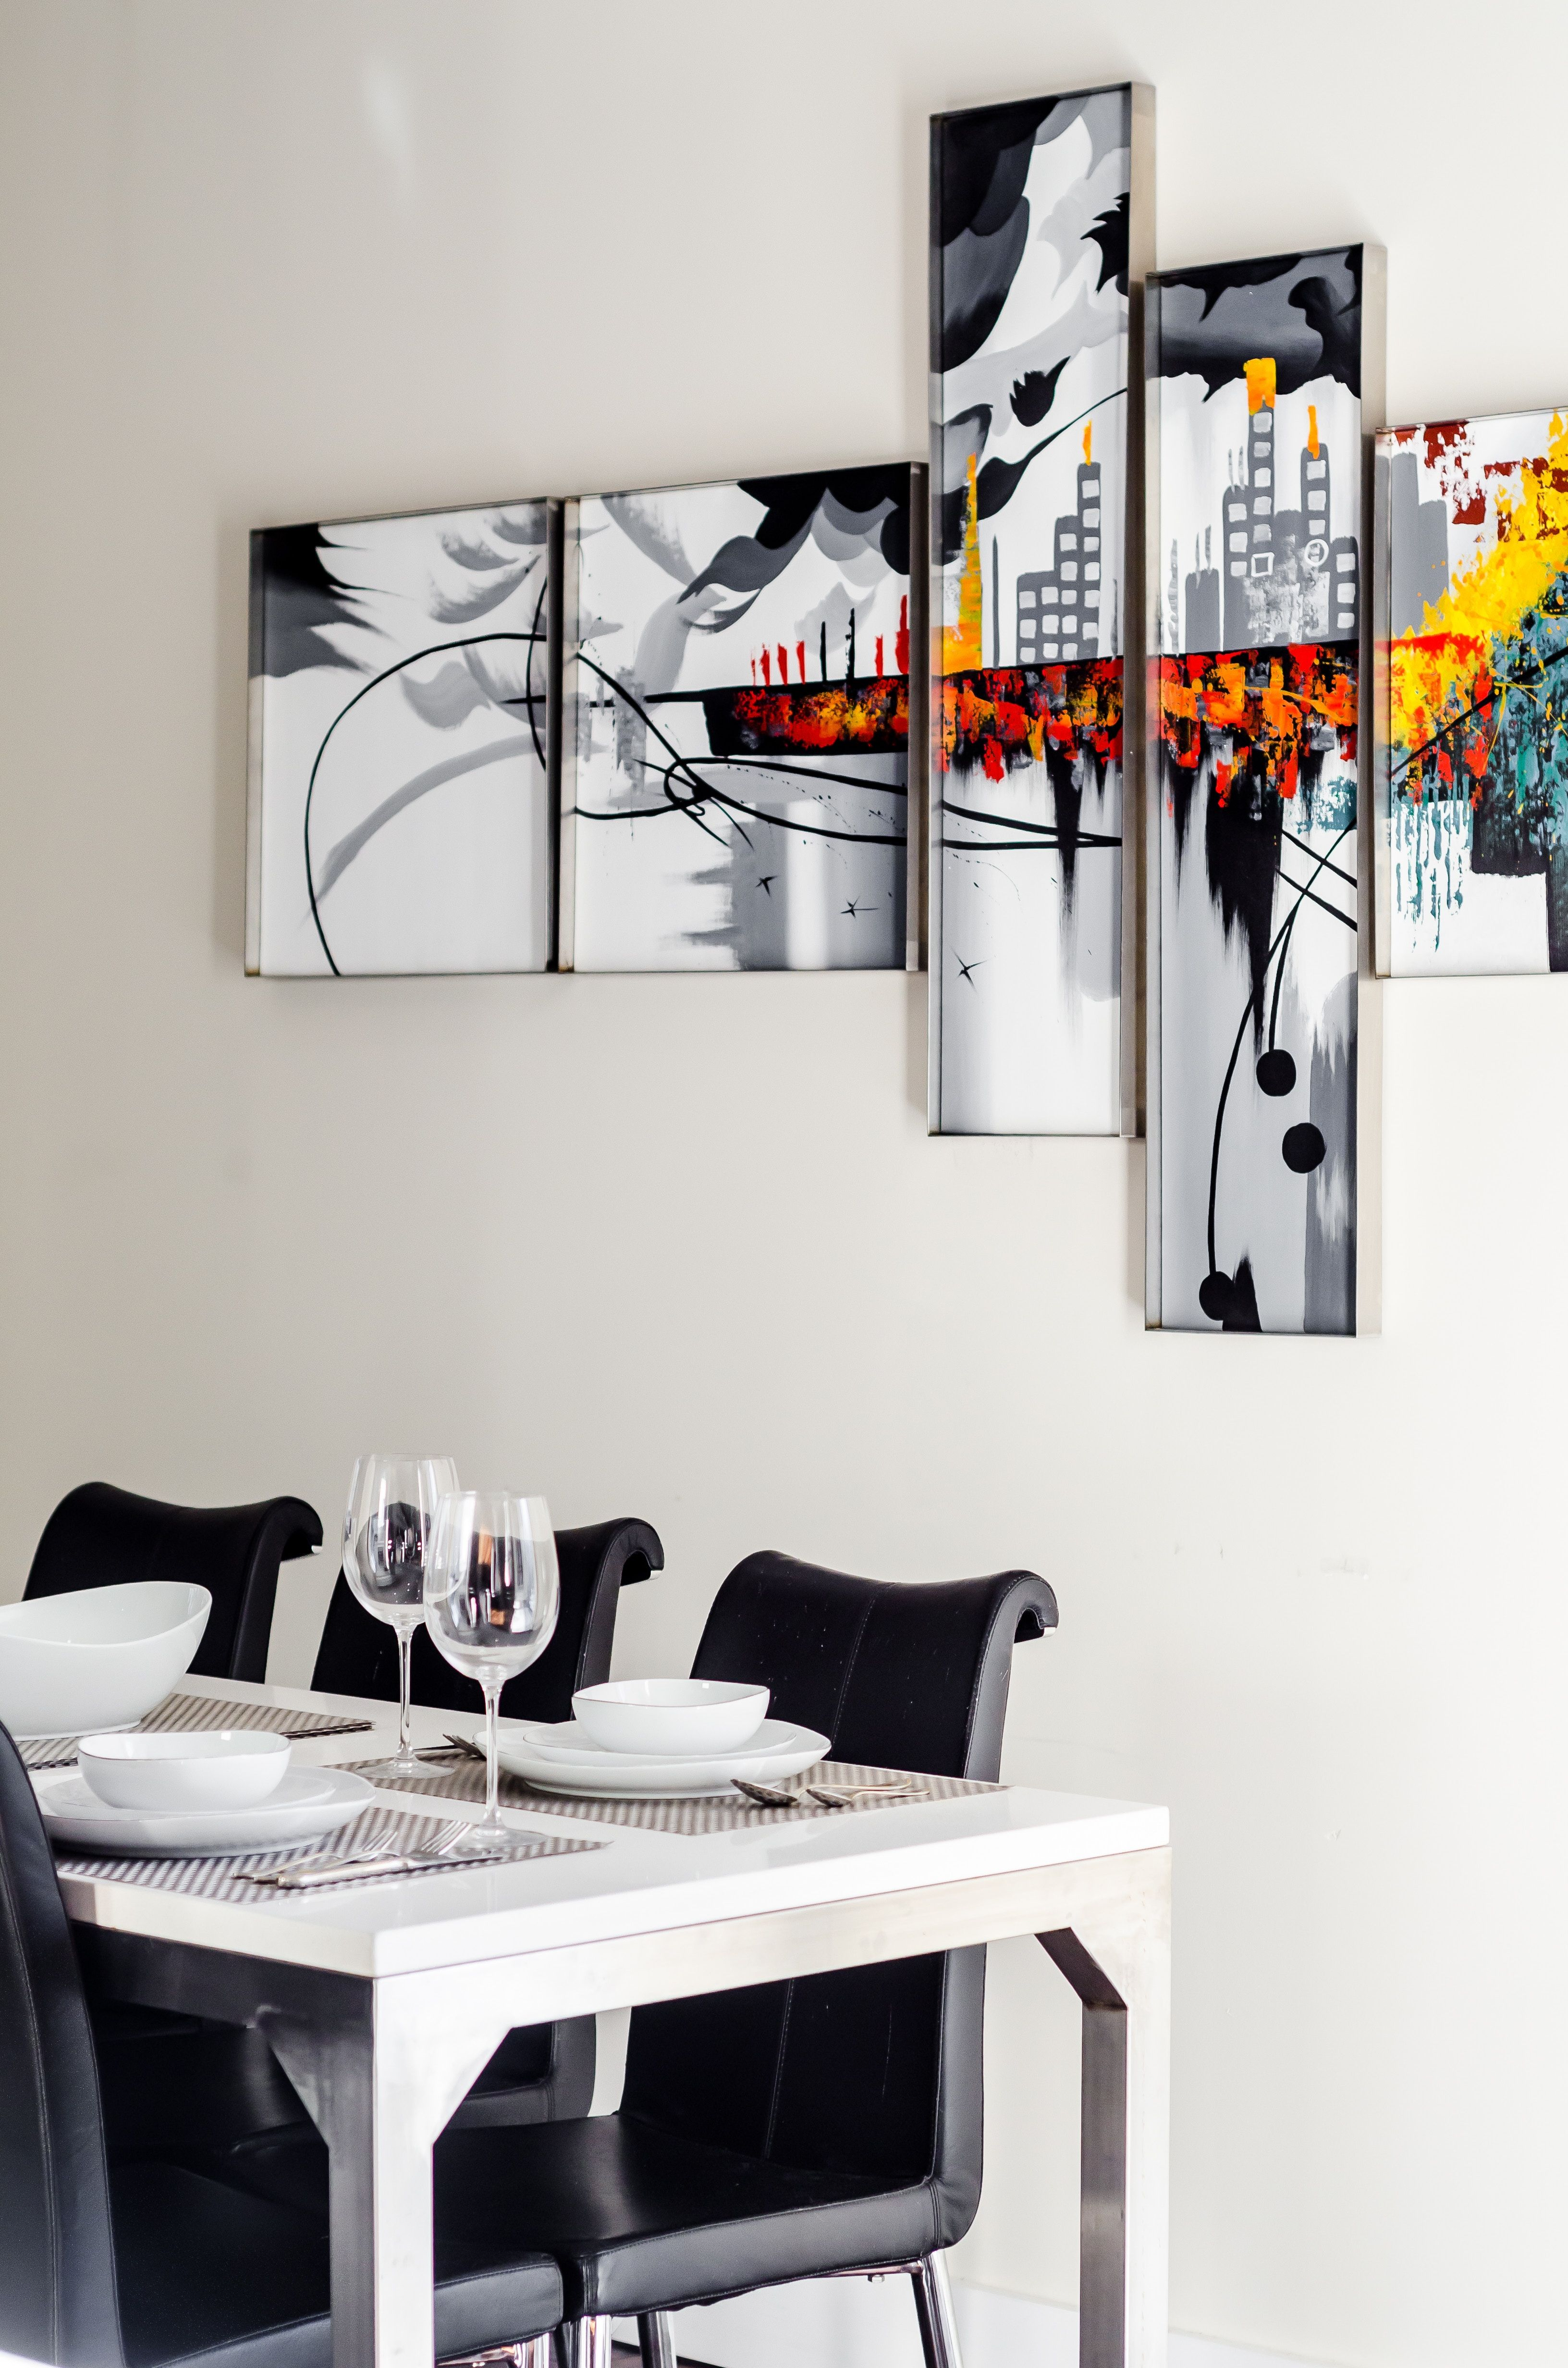 5 Dining Room Designs To Inspire You To Remodel Your Home Dining Room Wall Decor Modern Dining Room Dining Room Decor Modern